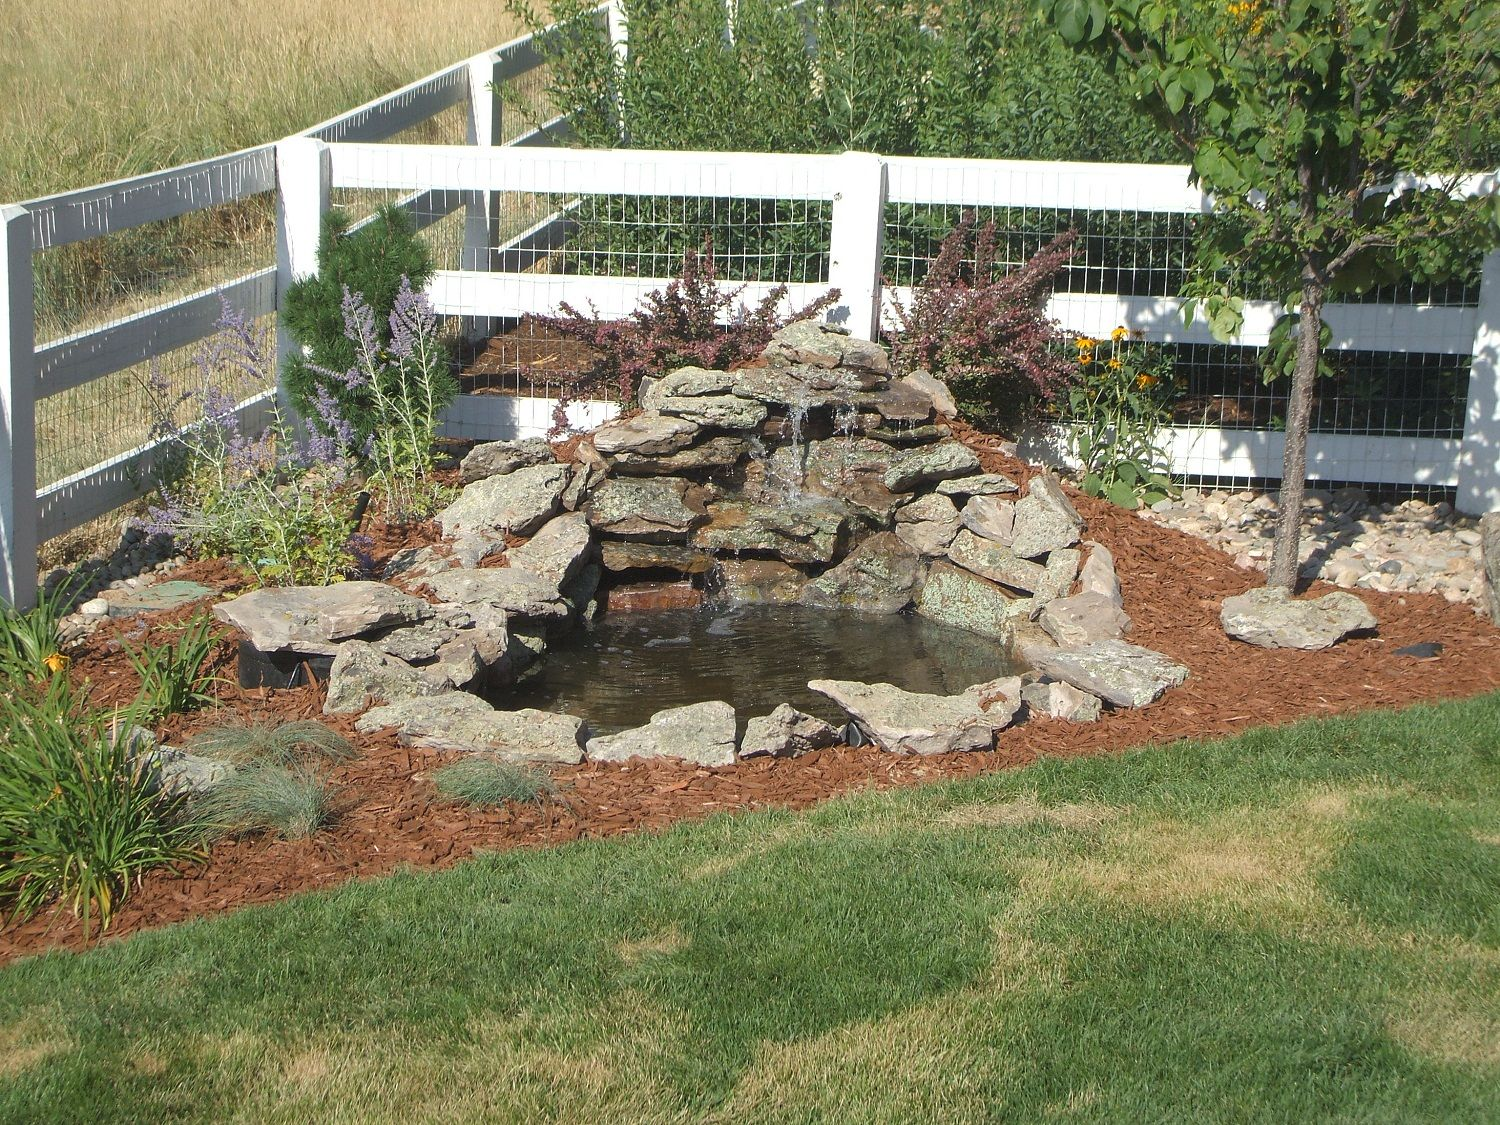 Garden and patio small diy ponds with waterfall and stone for Homemade pond ideas